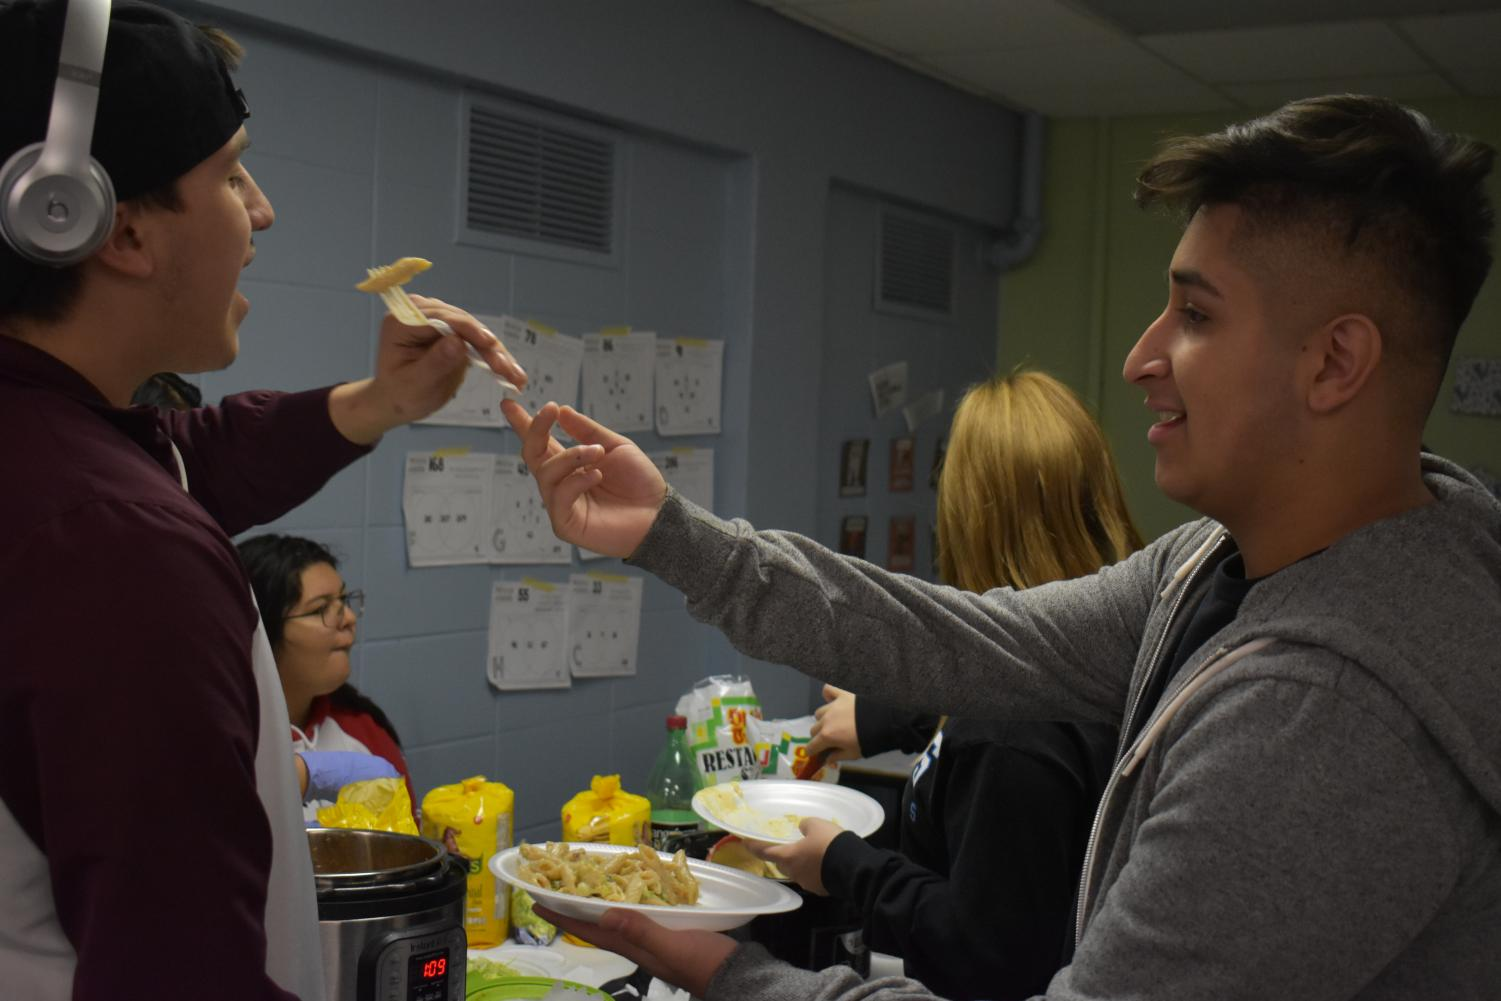 Senior Danny Martinez shares food with senior Braulio Vela-Garray during NTA's Thanksgiving meal. The Thanksgiving meal is one example of how NTA creates a tight-knit community within the program.